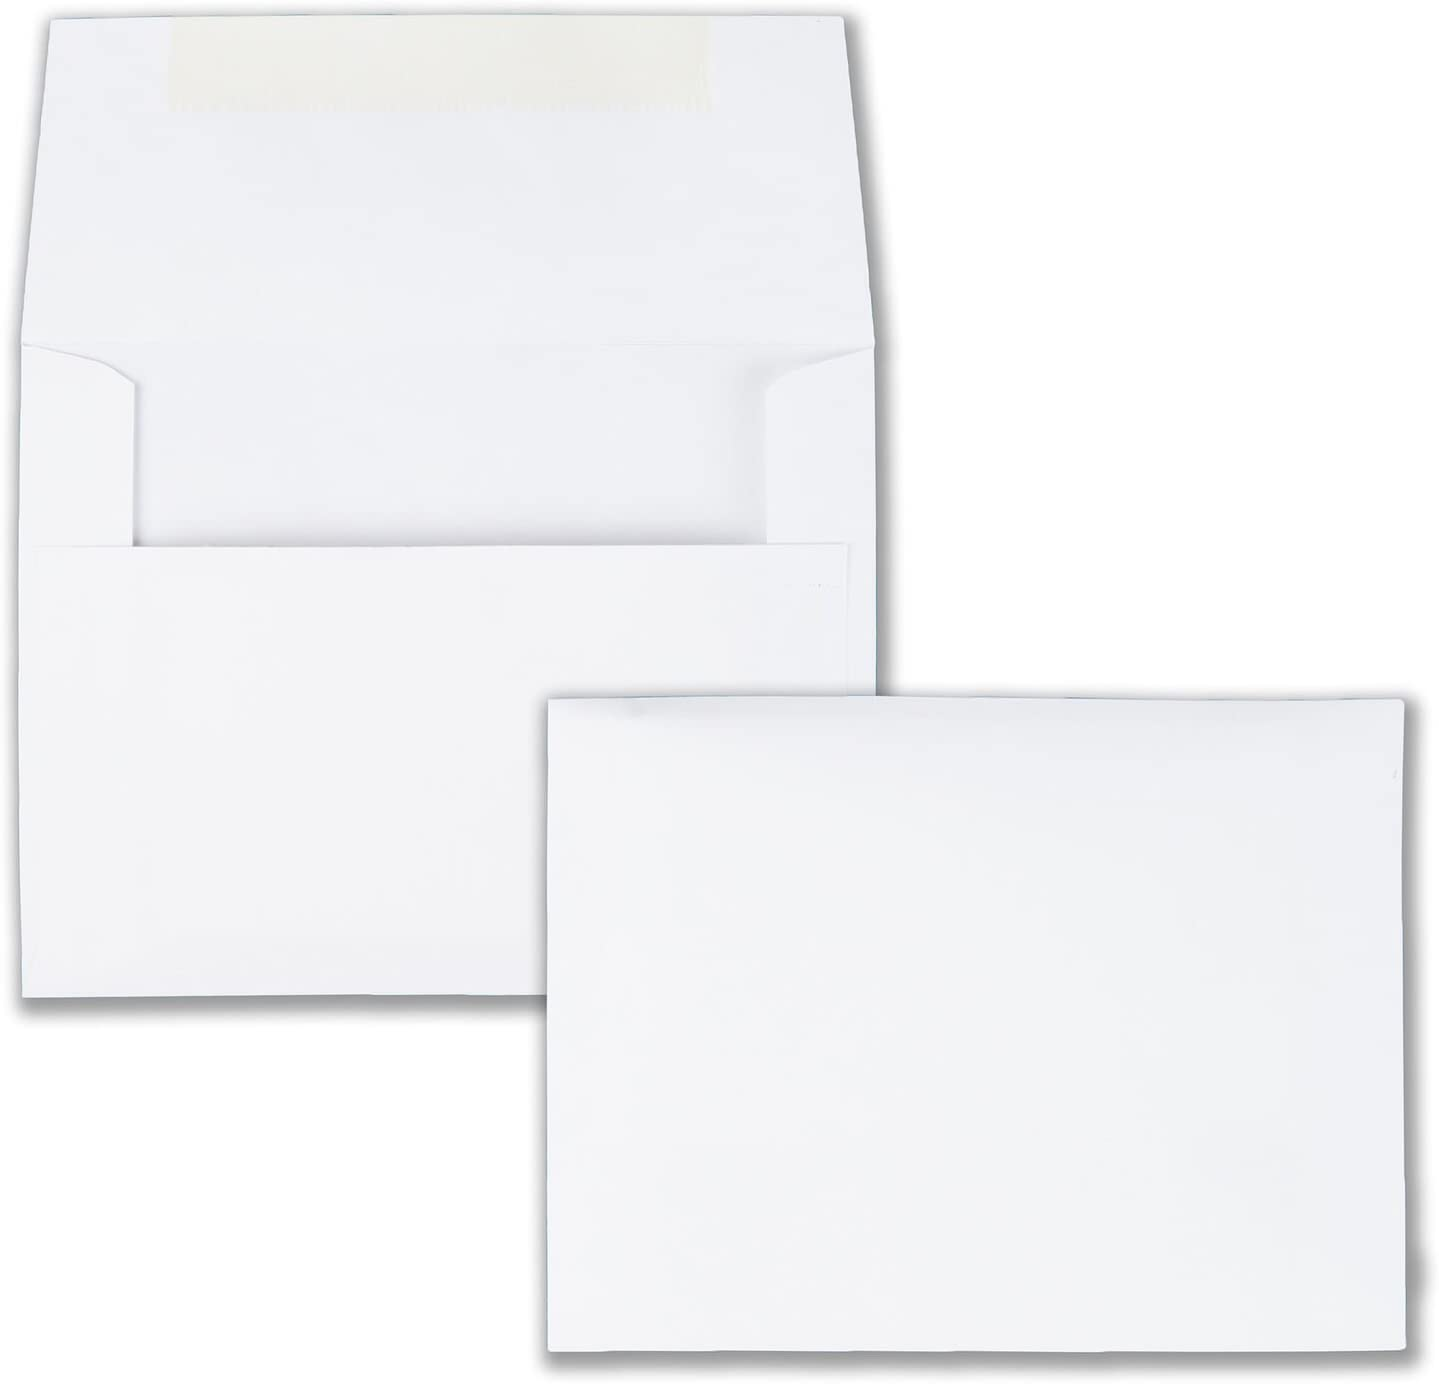 Quality Park Invitation Envelopes, #5.5, White, 4.375 x 5.75 inches, Box of 100 (36217) : Greeting Card Envelopes : Office Products